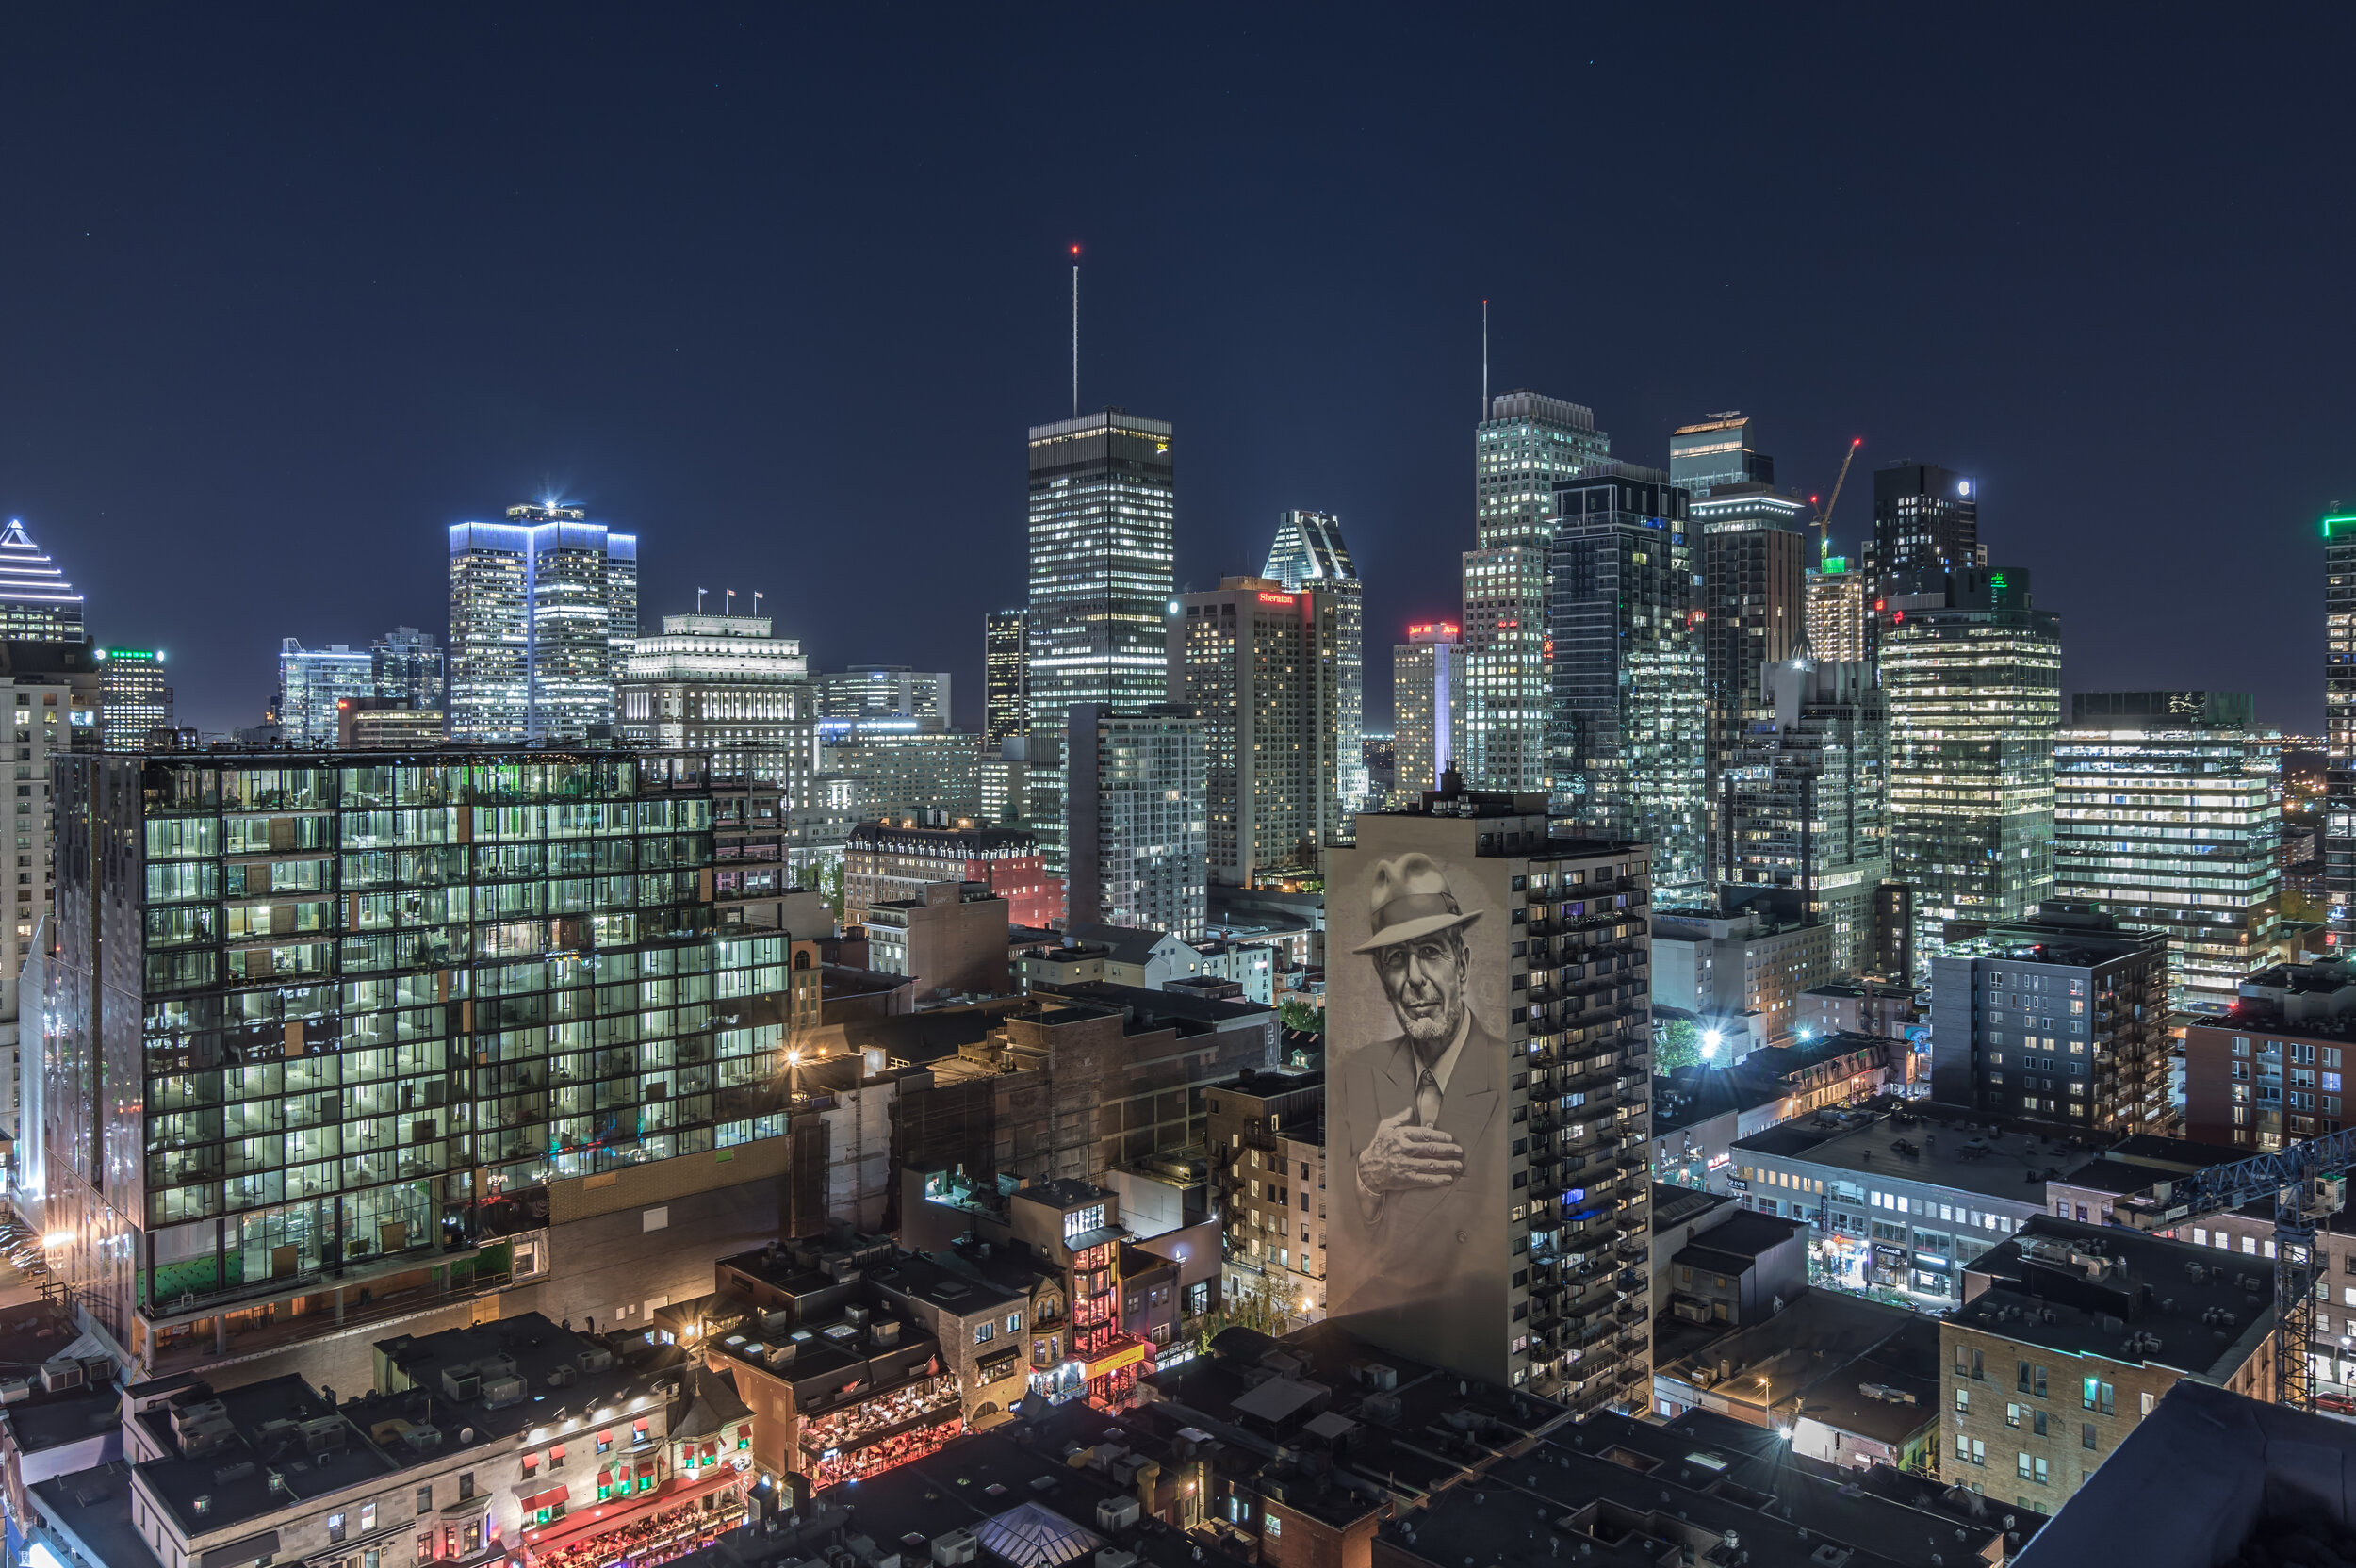 38381-Credit FR © MU, Ville-Marie, ElMac Gene Pendon (2017) - Photo _ Henry MacDonald (@night.shotz) – Tourisme Montréal-EN Credit © MU, Ville-Marie, ElMac Gene P - Copy.jpg